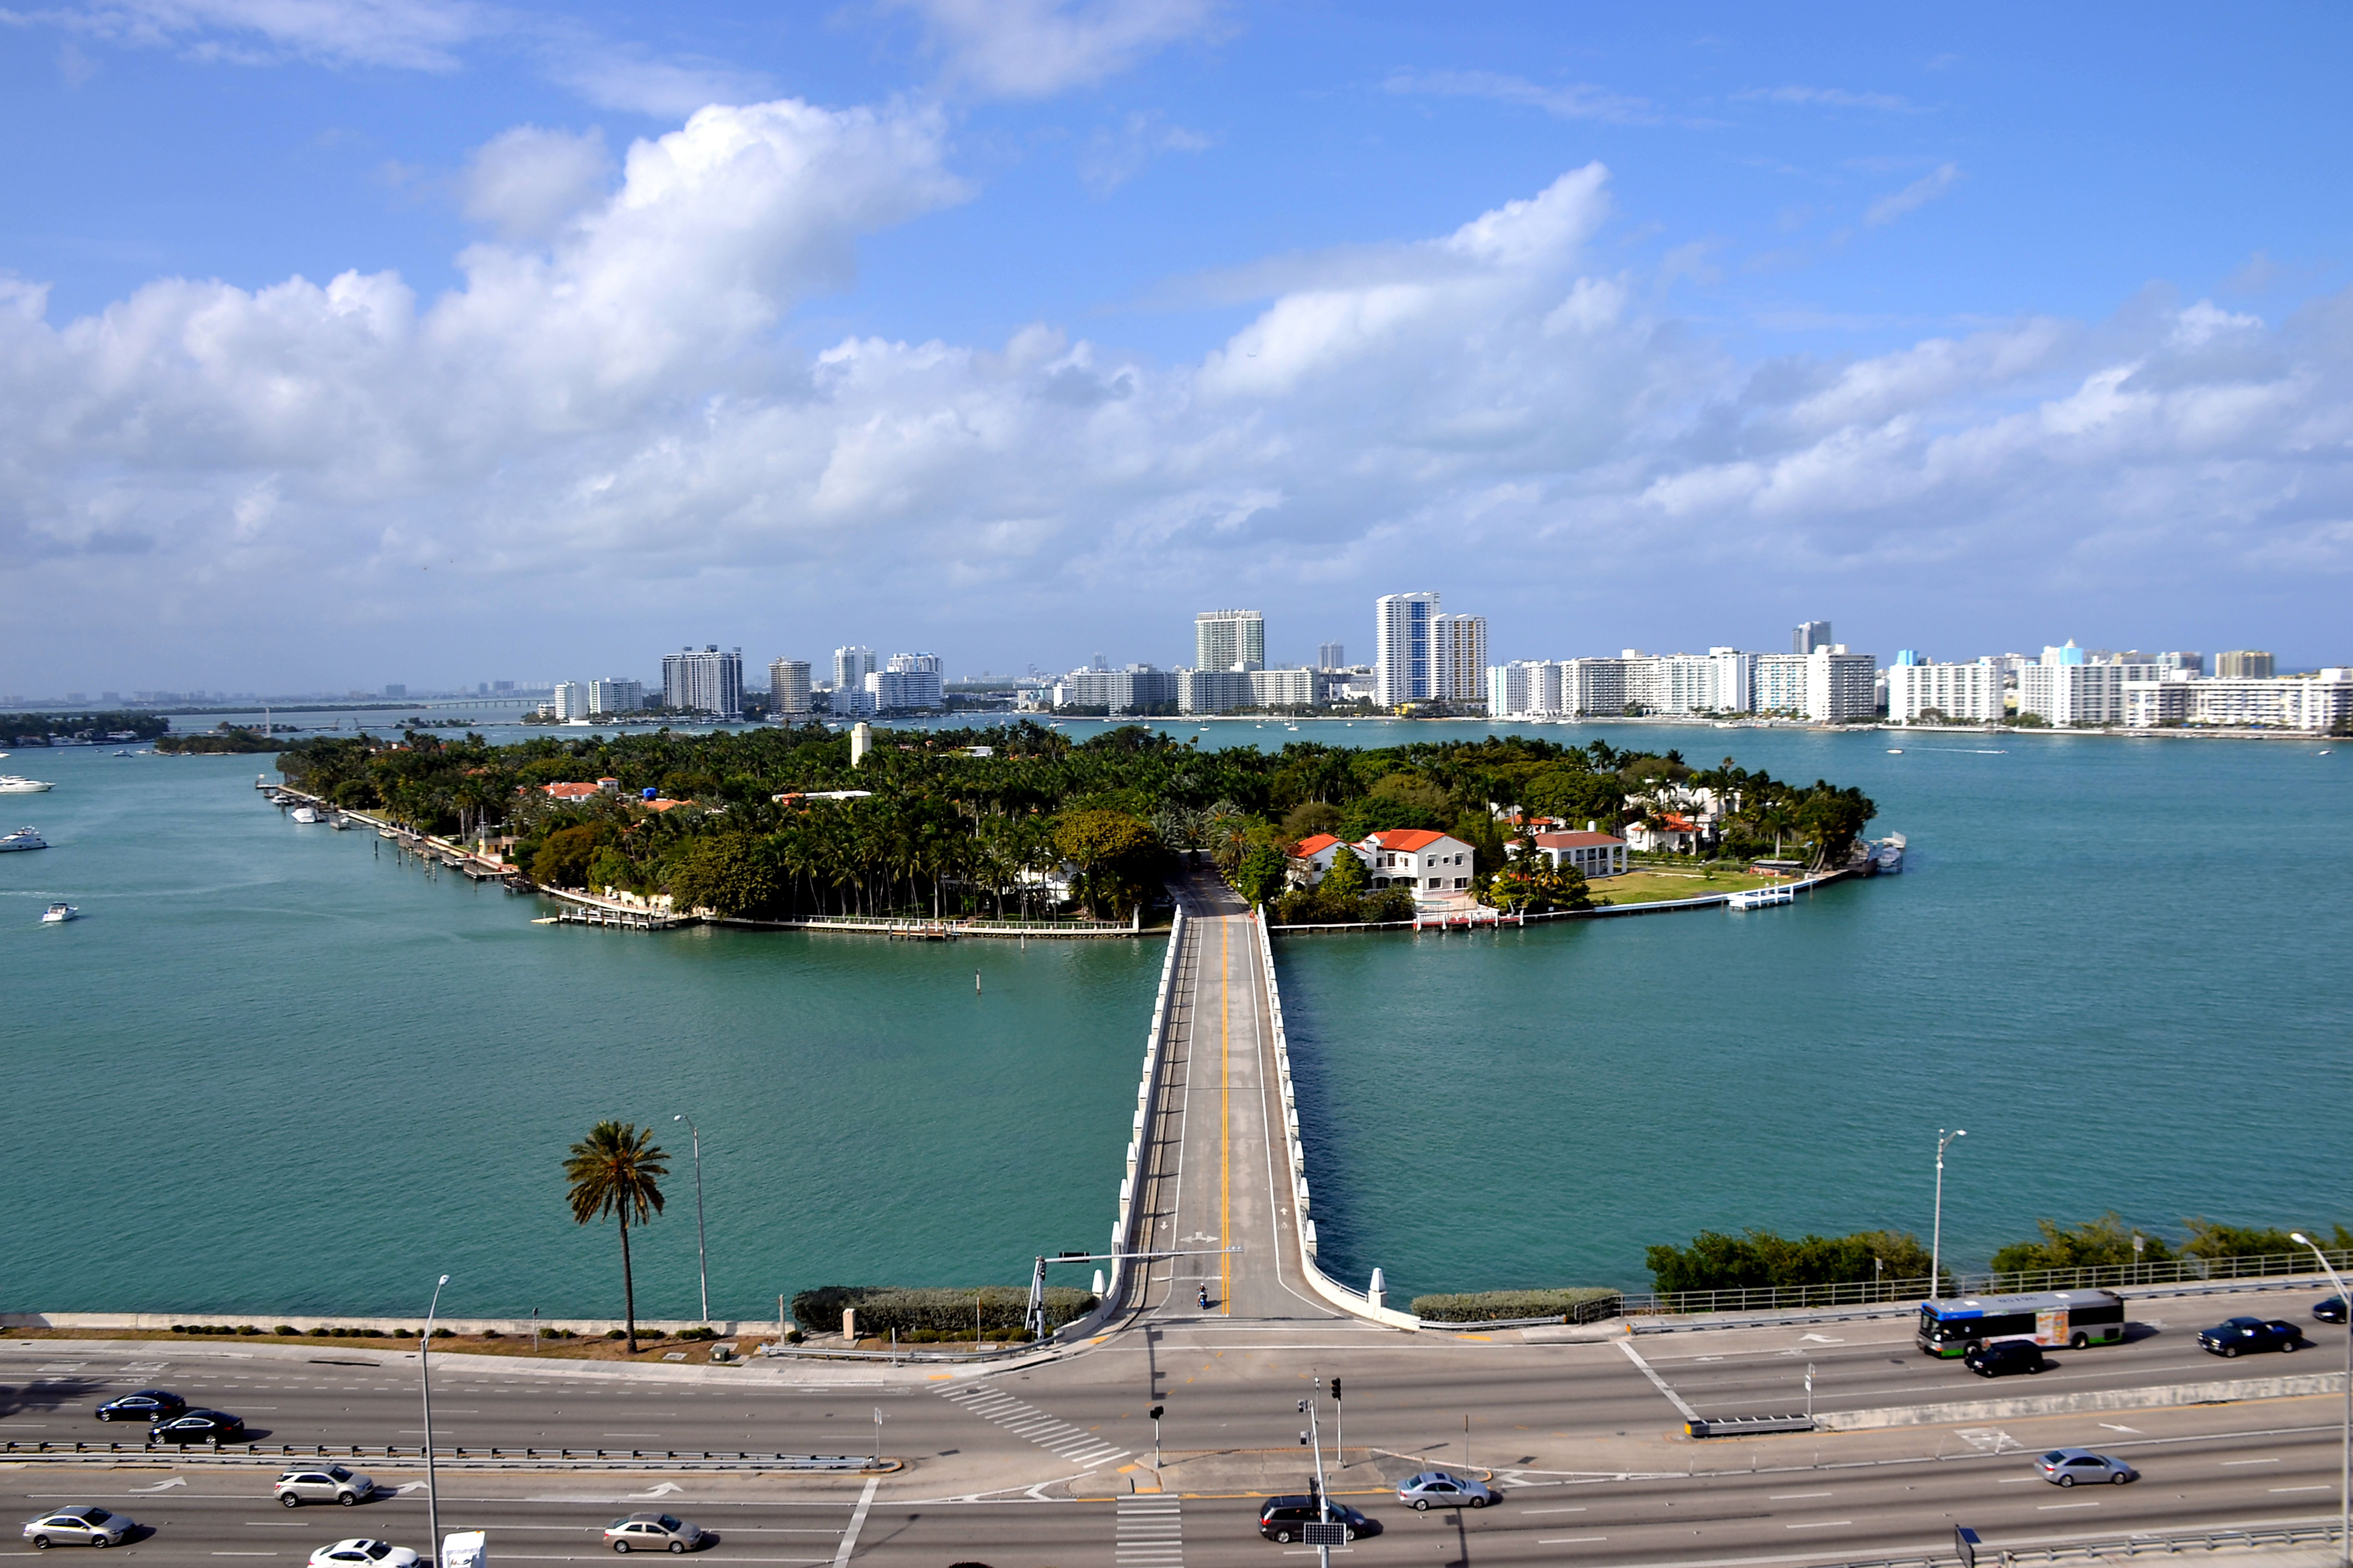 purchase in Miami; beautiful view of Star Island